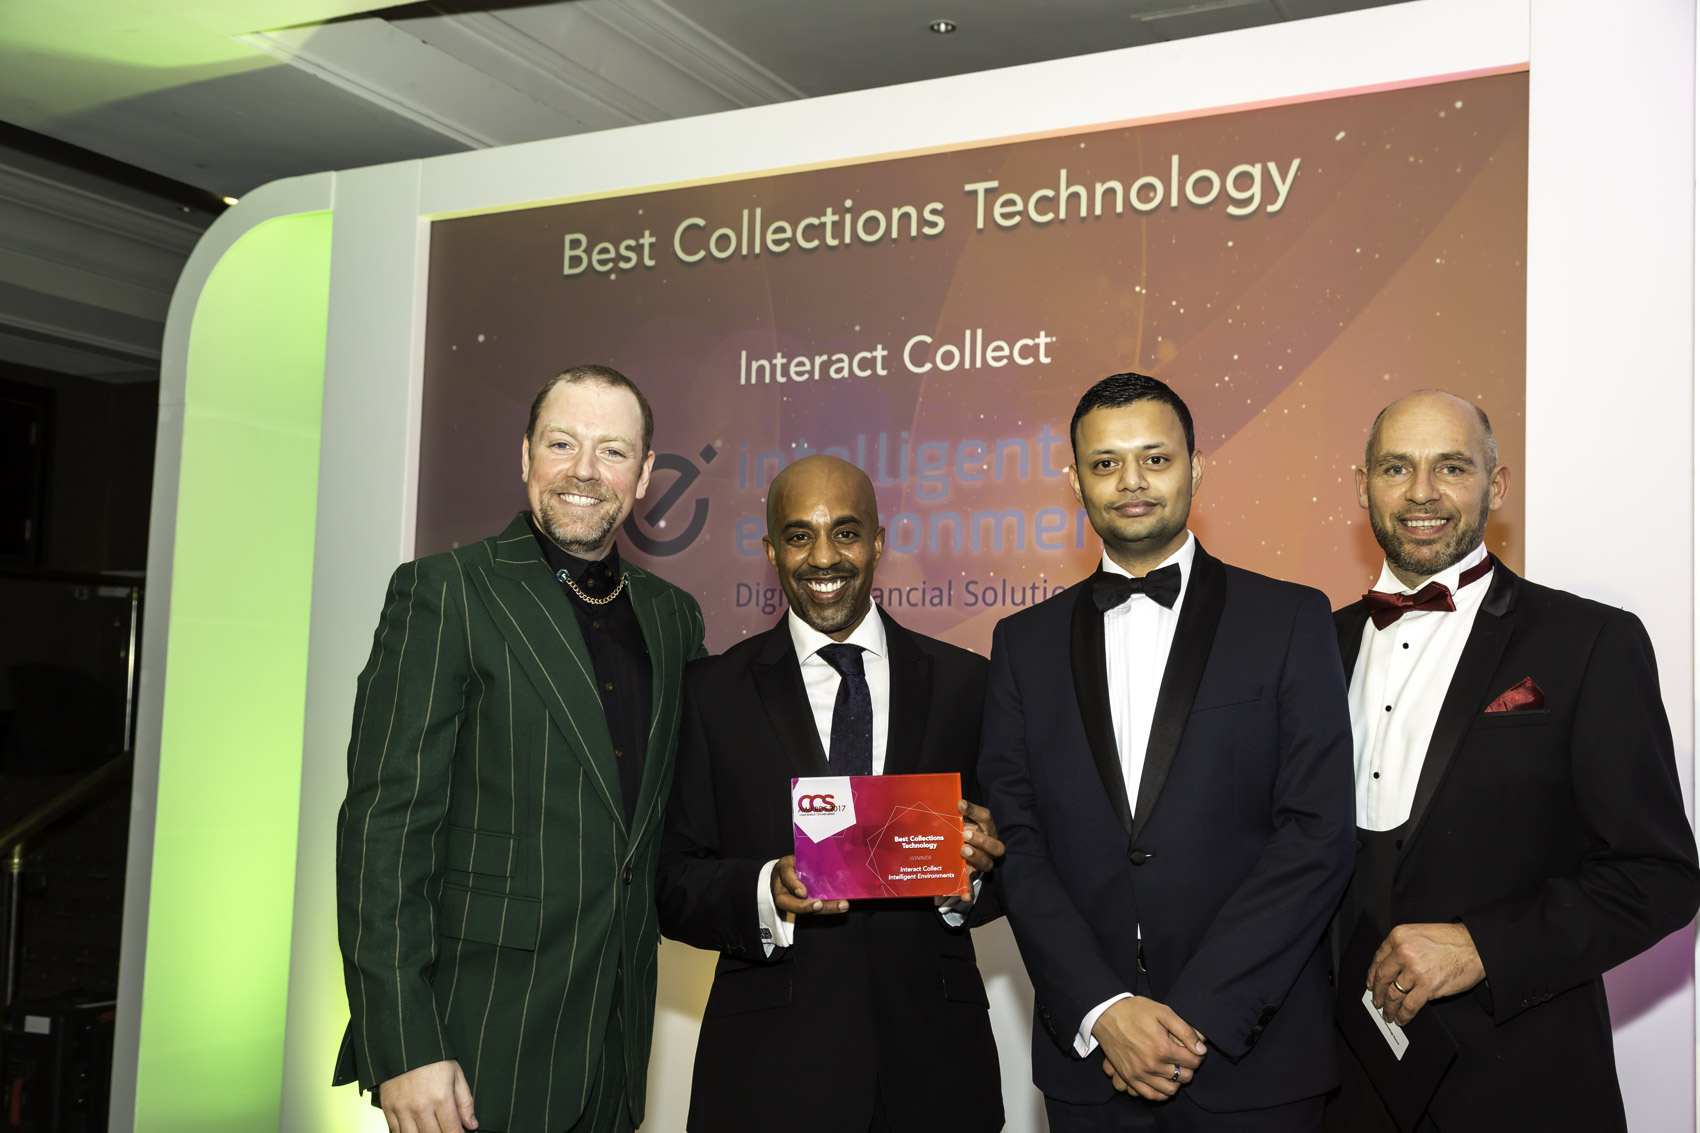 Winners CCS 2017 - 1 Best Collections Technology